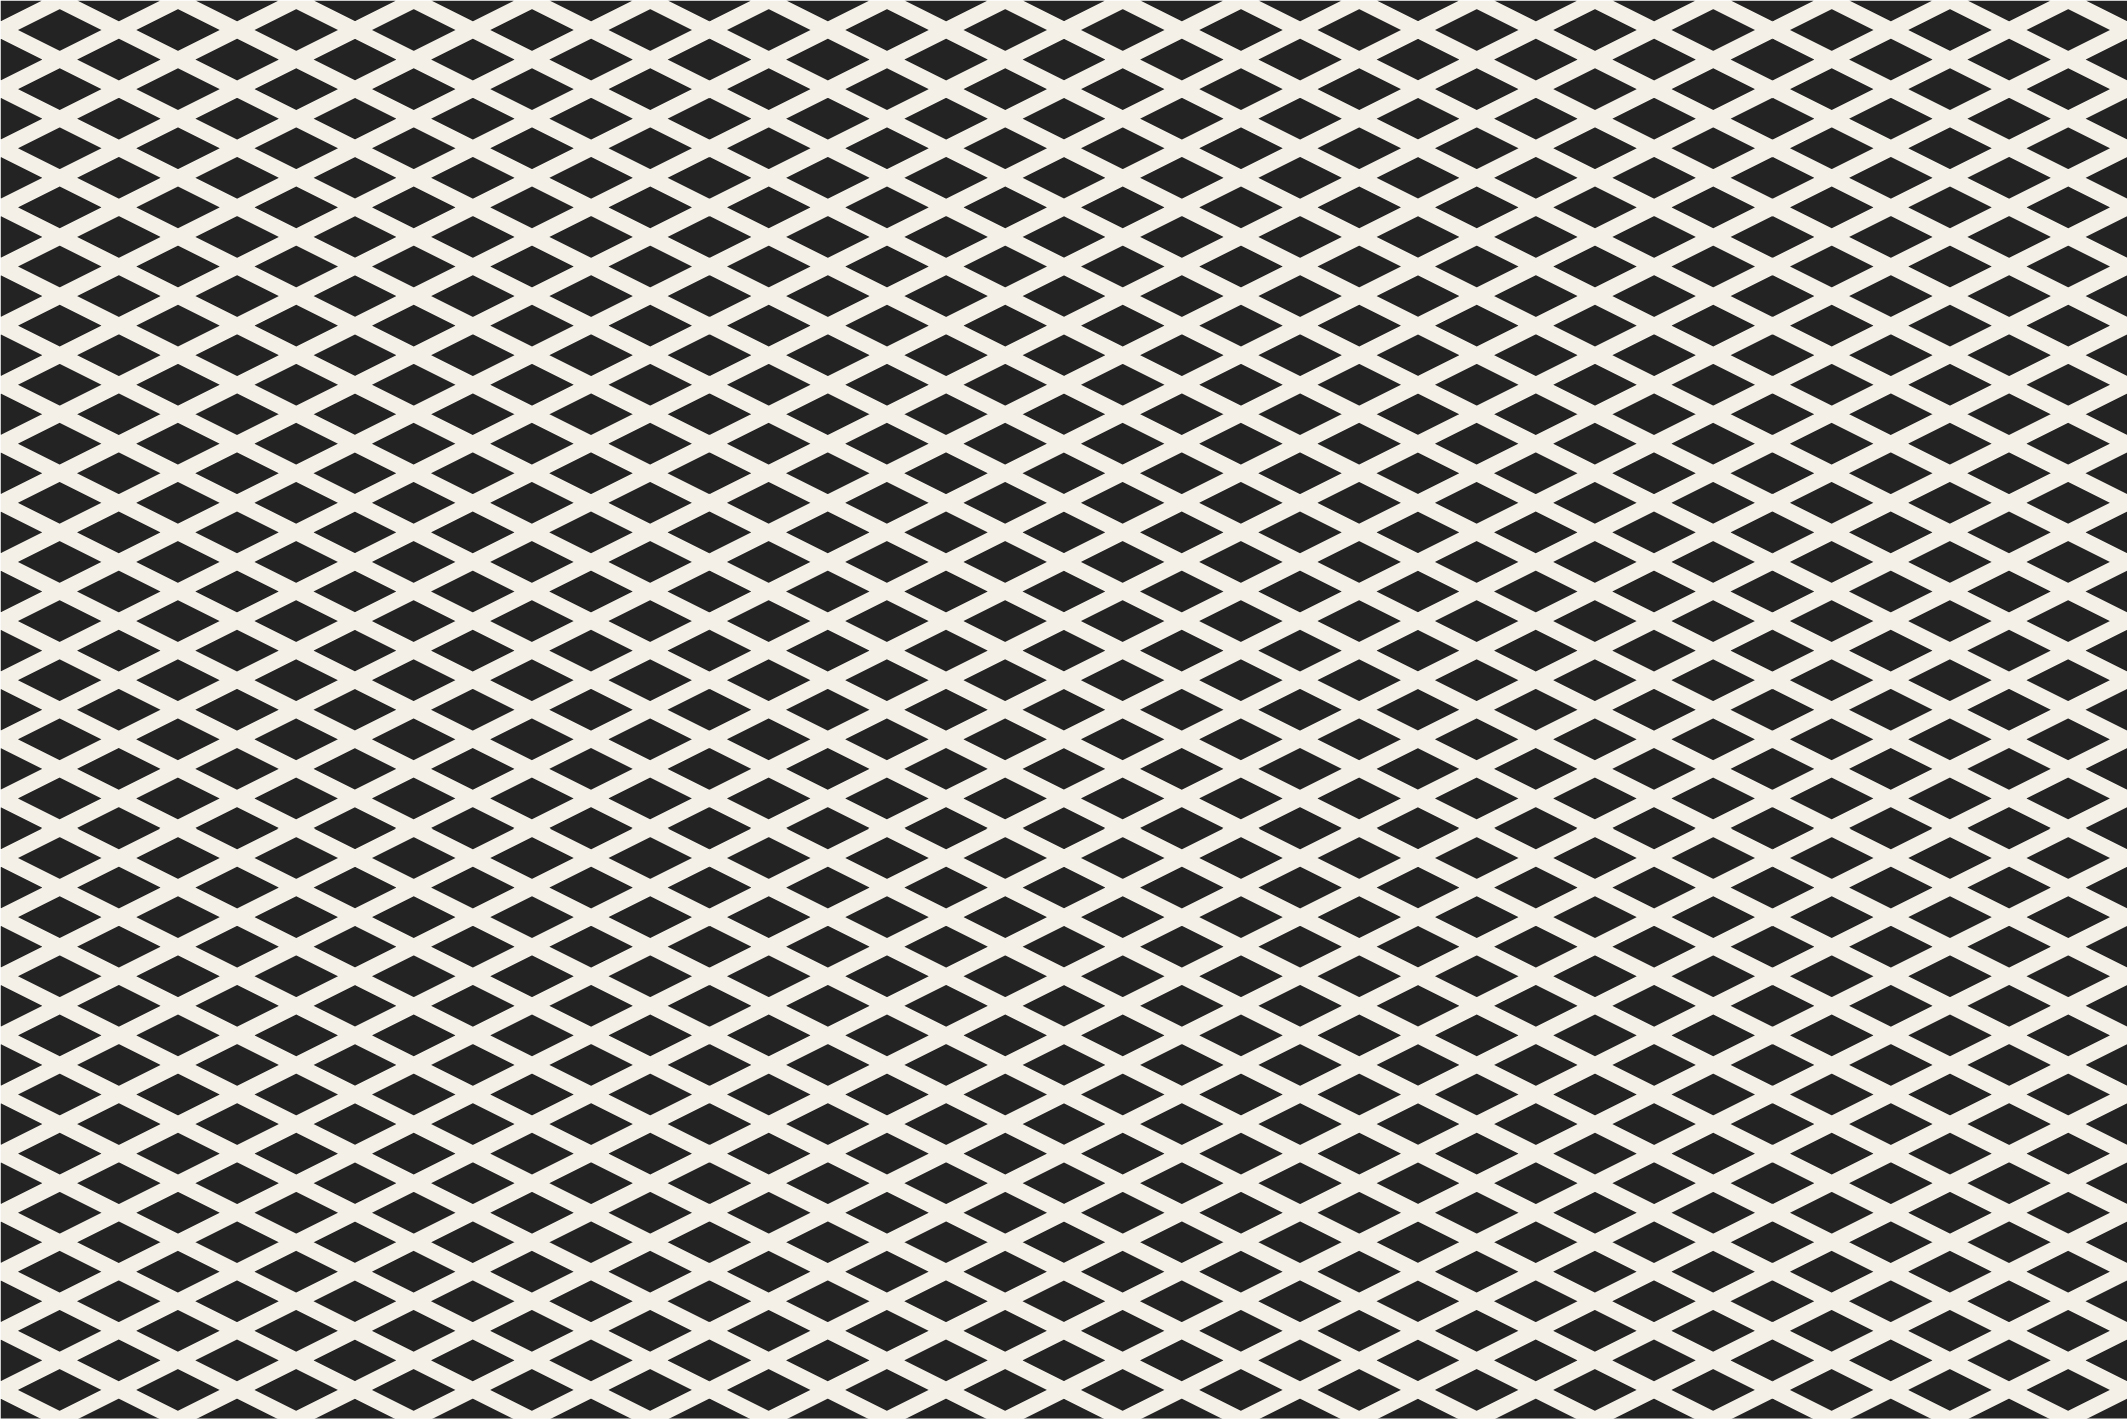 Geometric vector seamless patterns example image 8